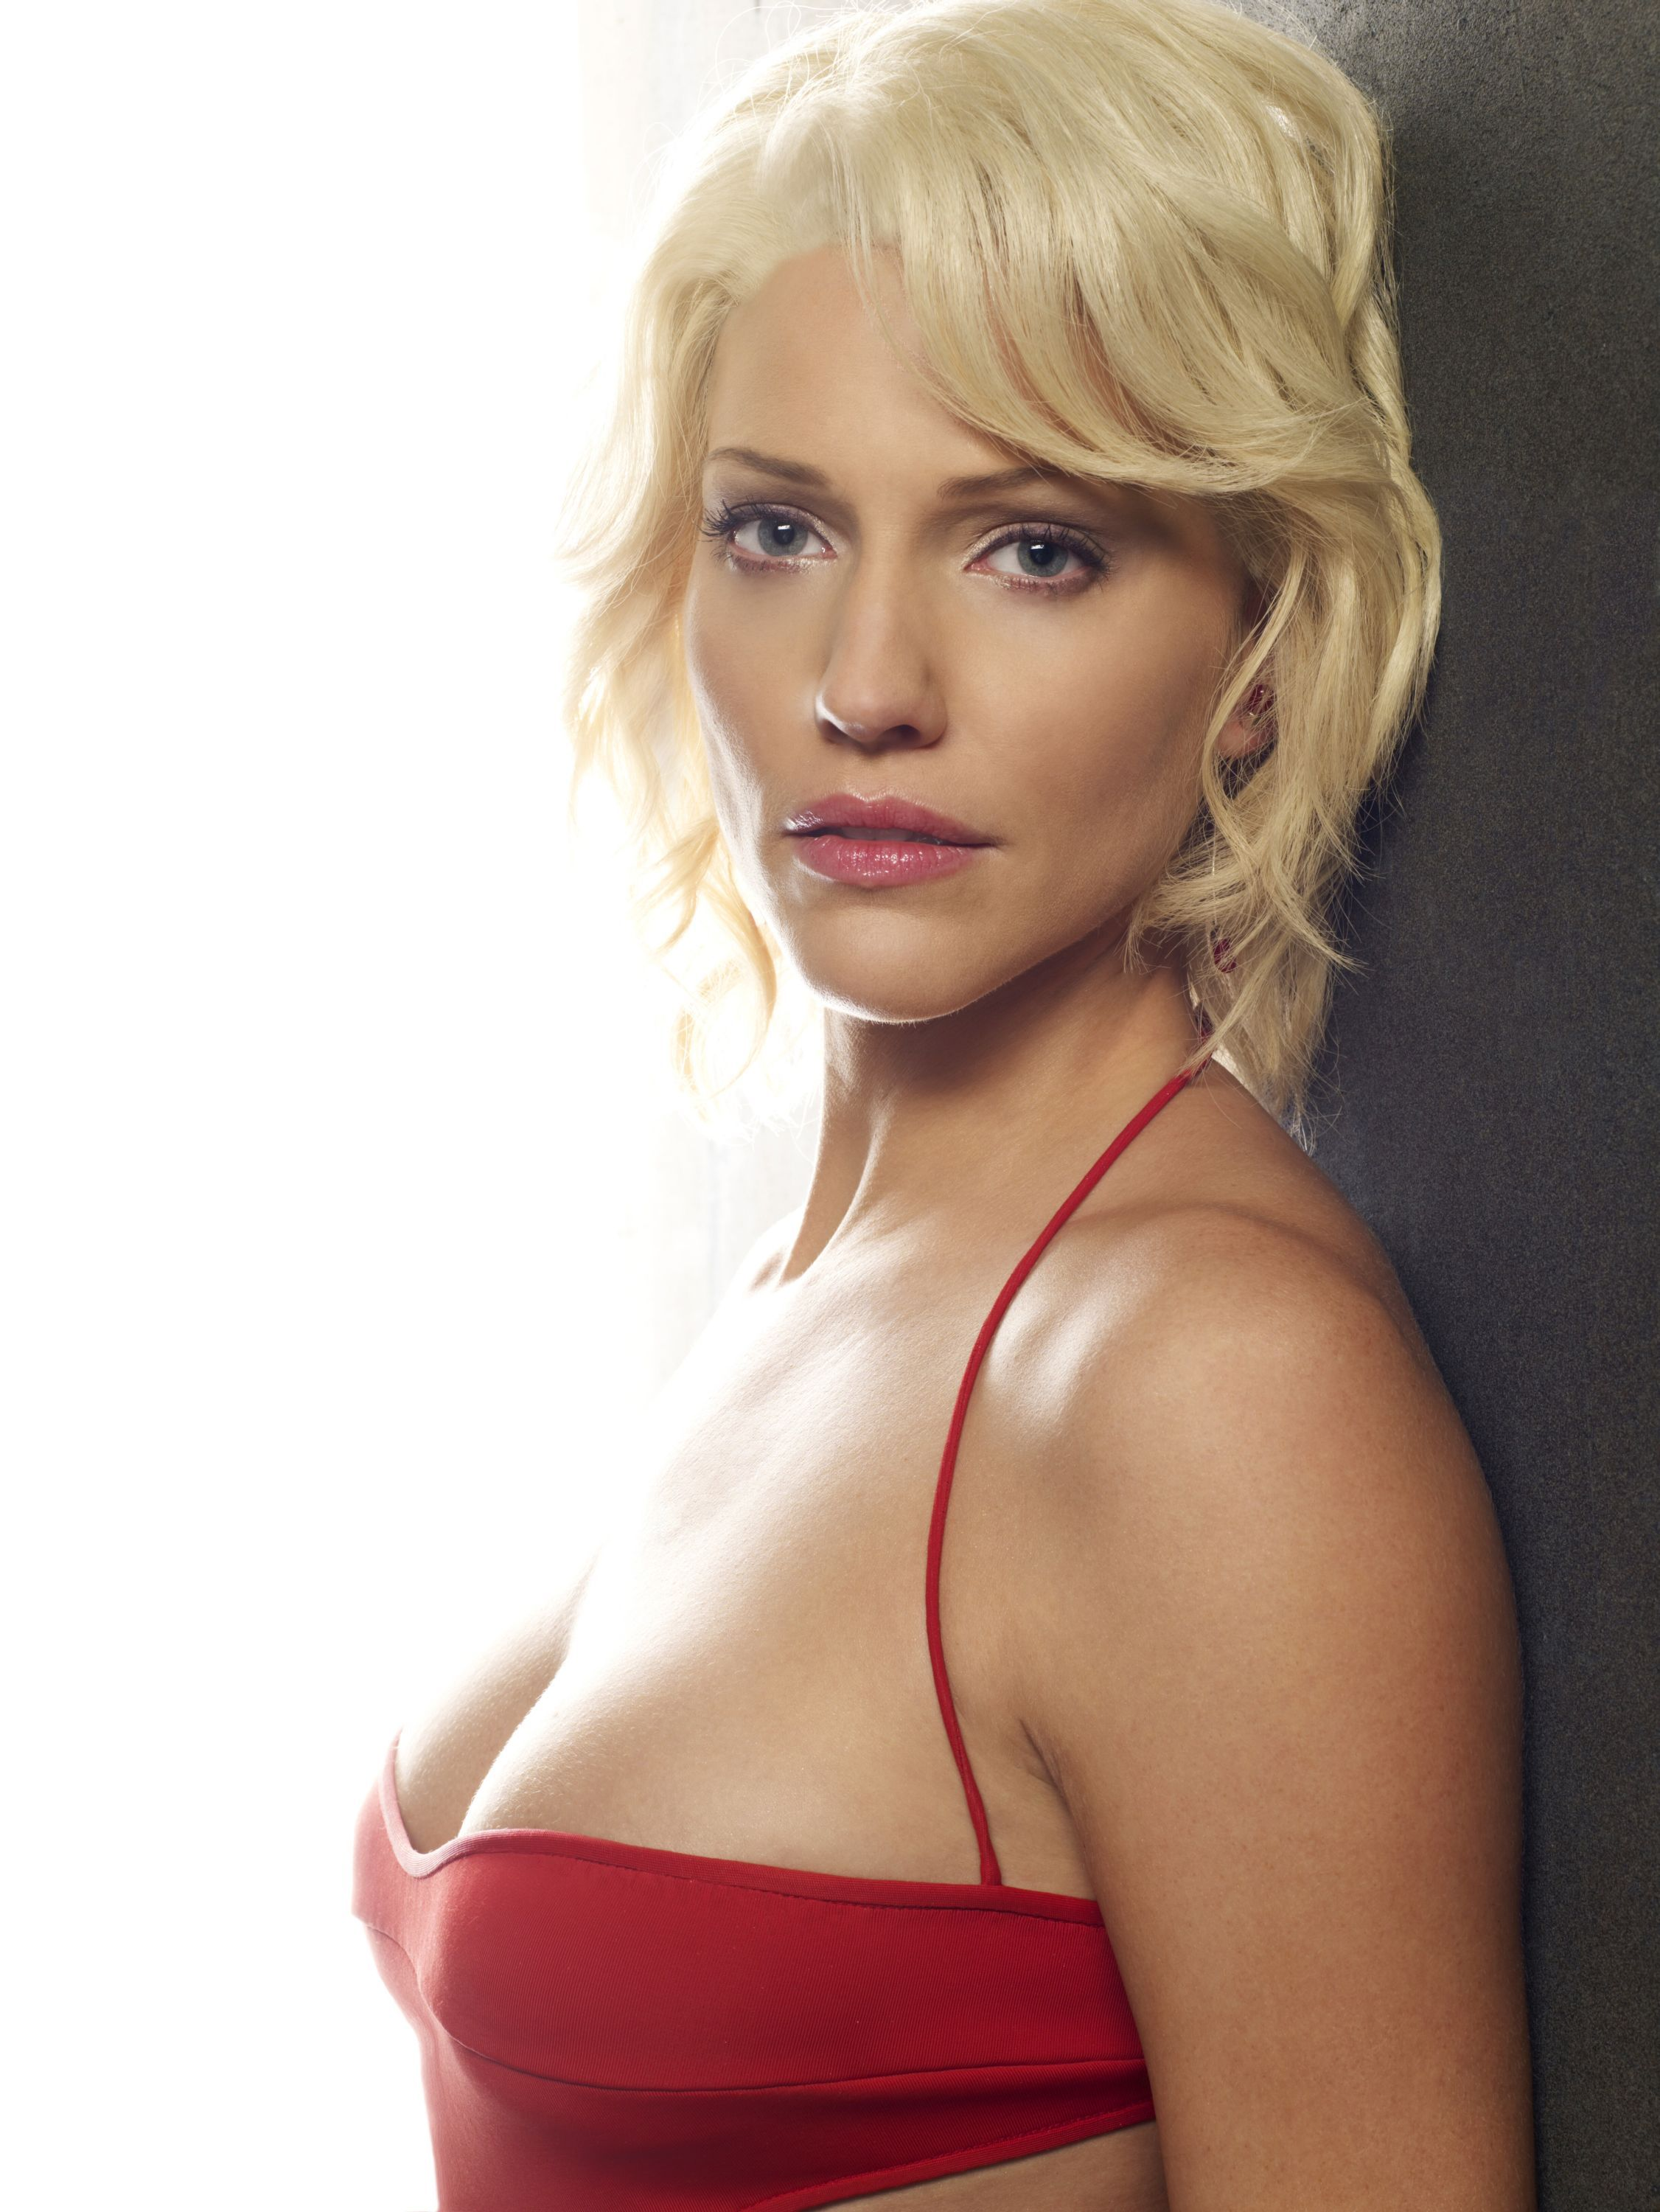 81 Best ♥ Tricia Helfer ♥ images in 2015